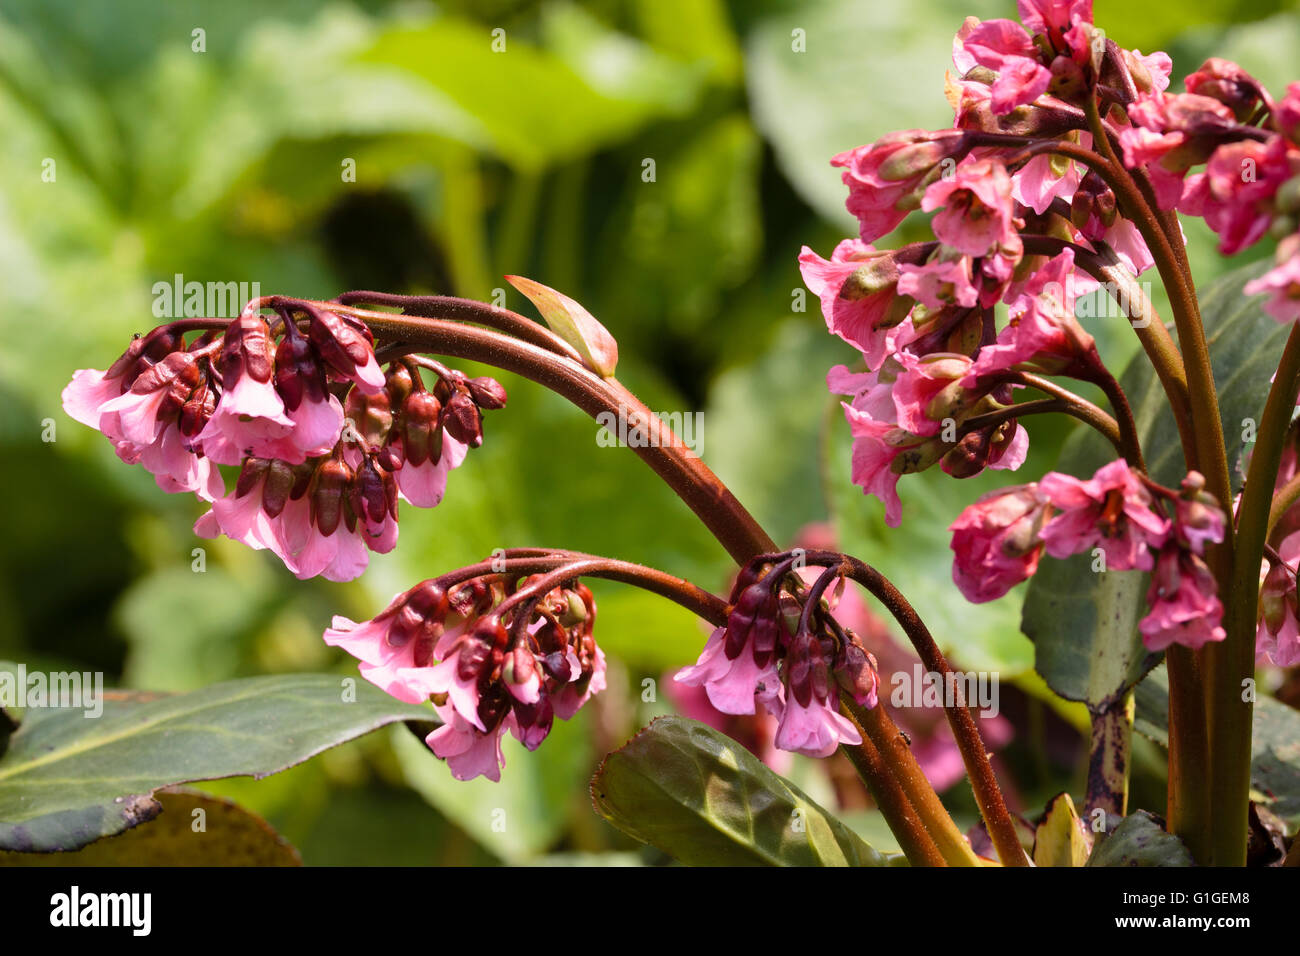 Spring flowers of the large leaved, evergreen perennial, Bergenia 'Bressingham Salmon' Stock Photo